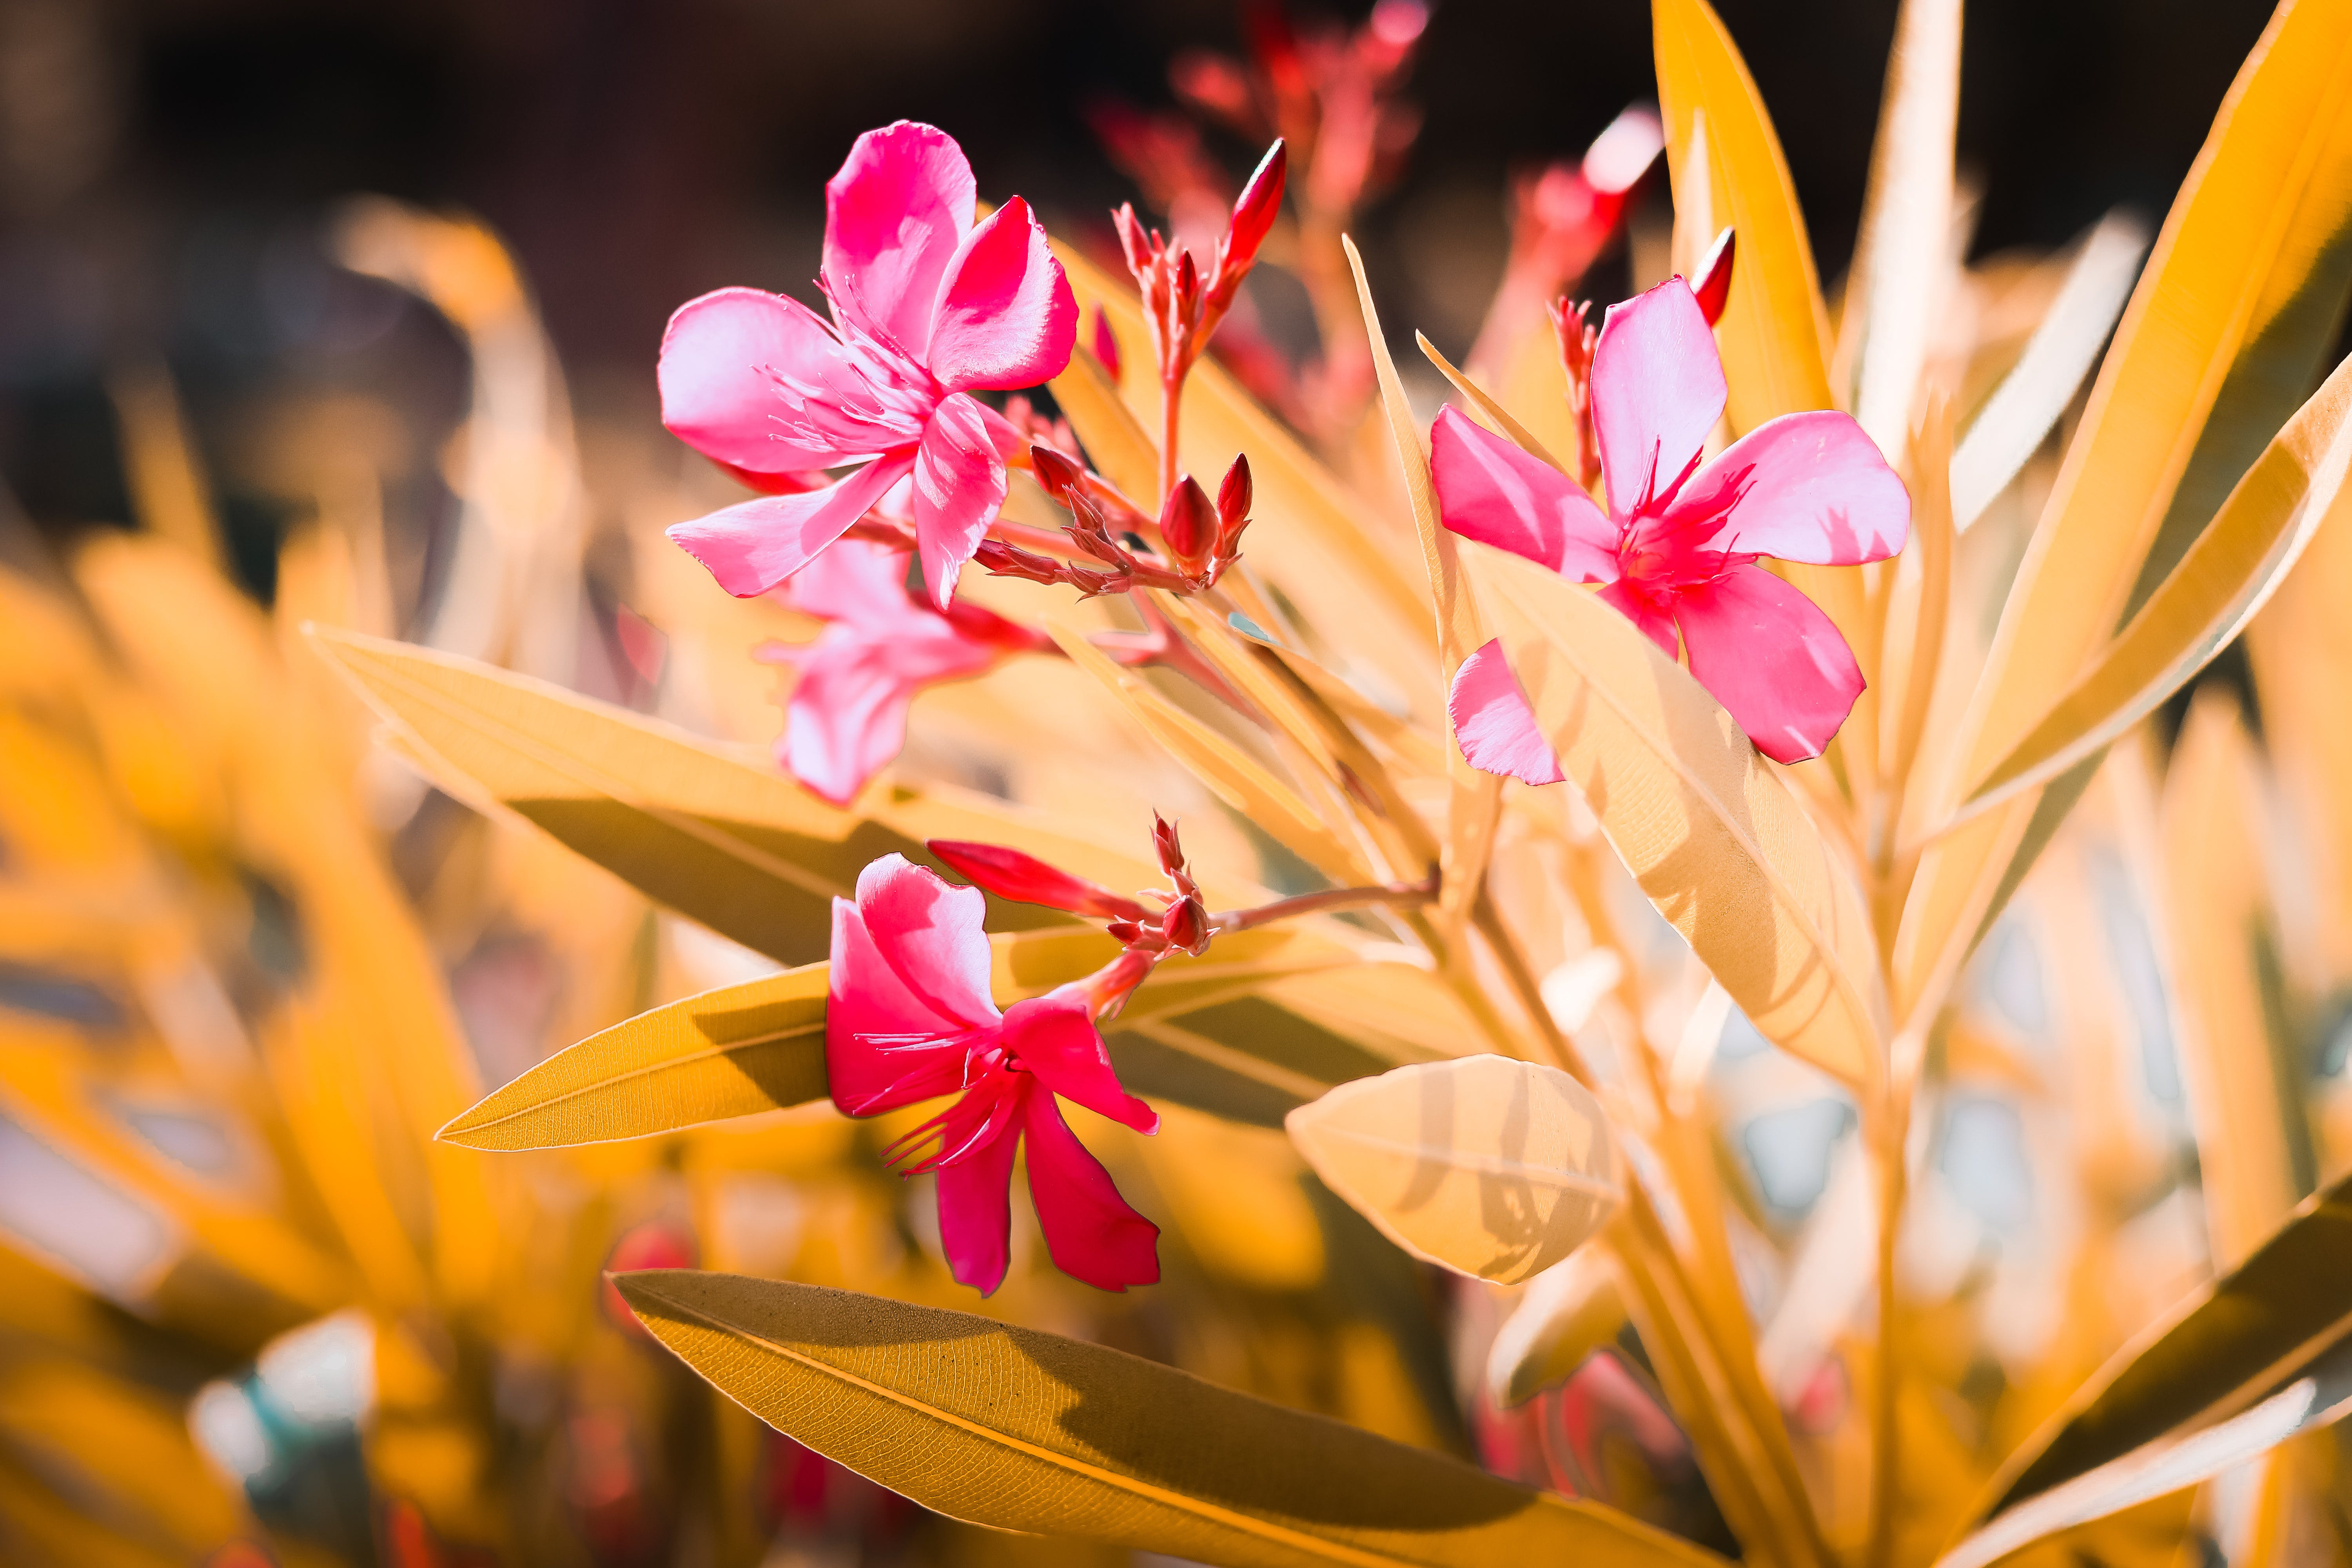 Tilt Shift Lens Photography Of Pink Petaled Flowers